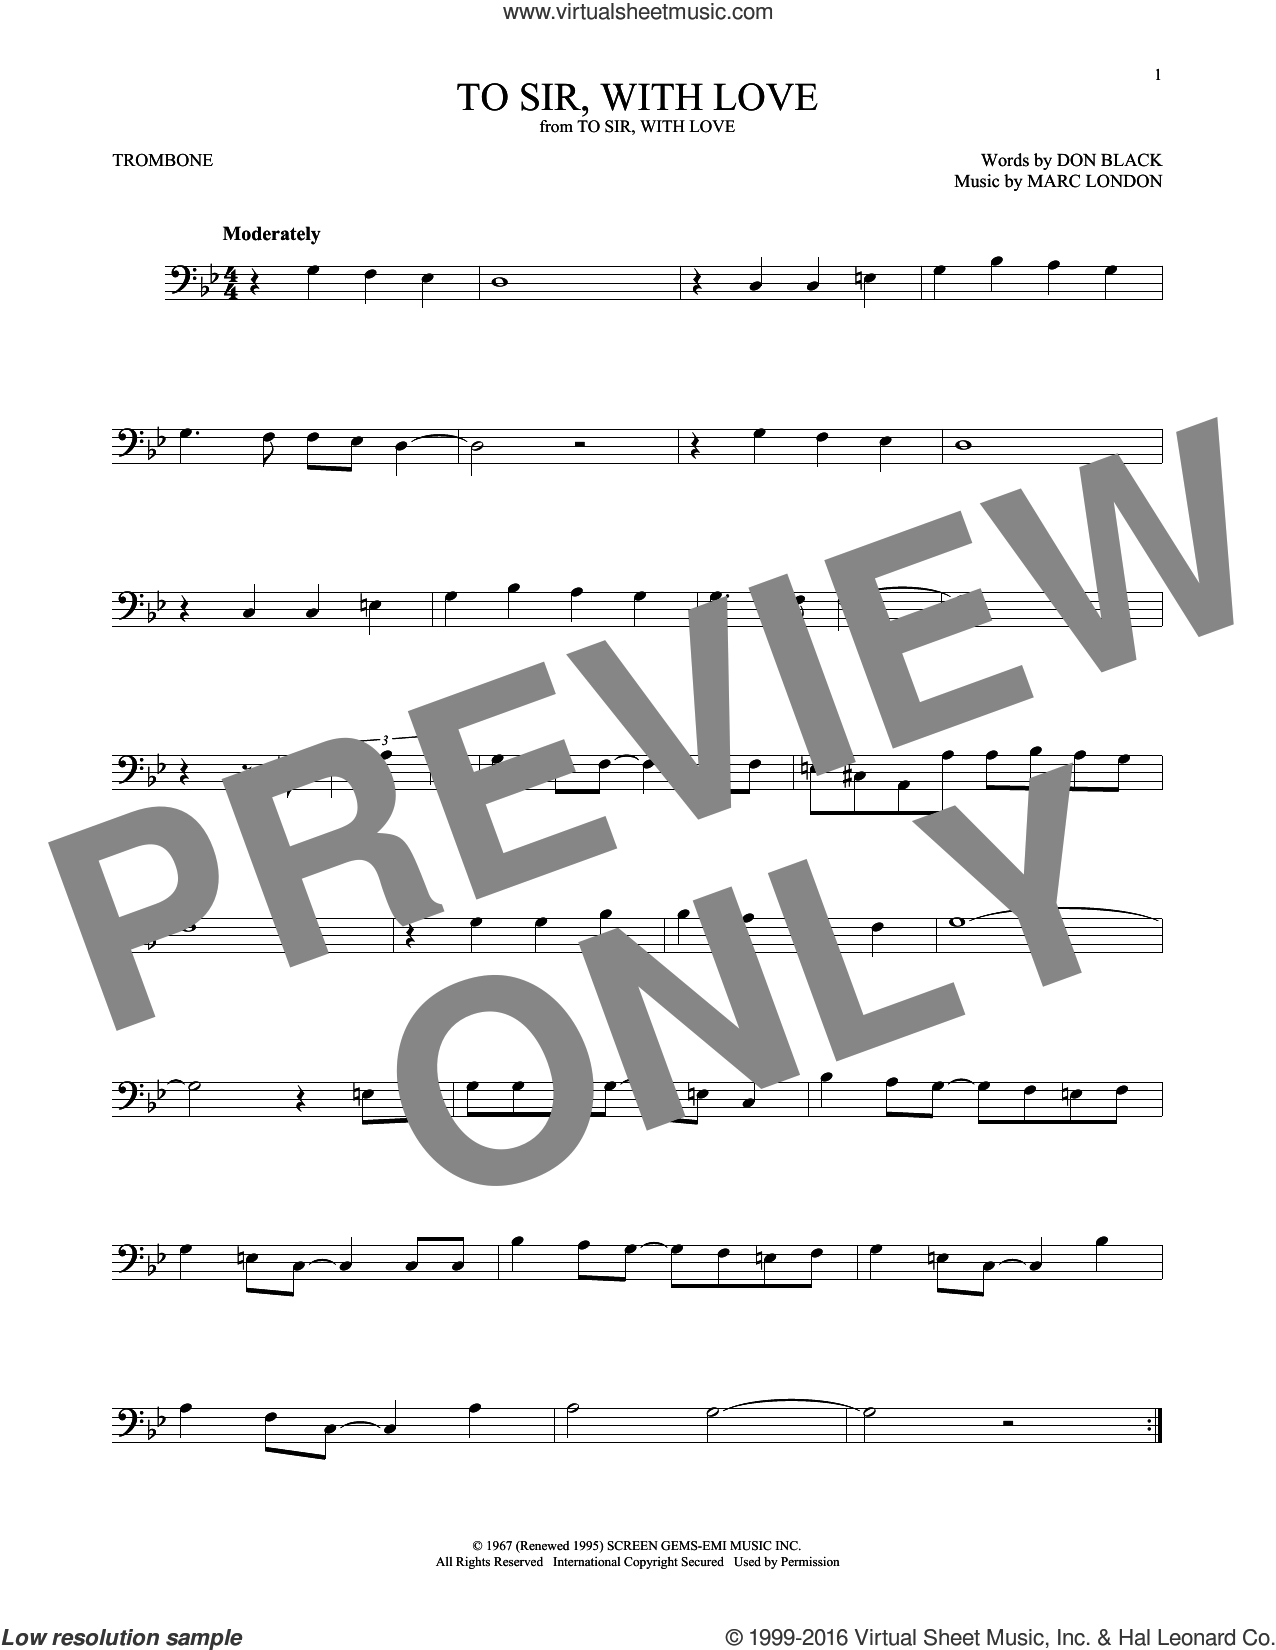 To Sir, With Love sheet music for trombone solo by Marc London, Lulu and Don Black. Score Image Preview.